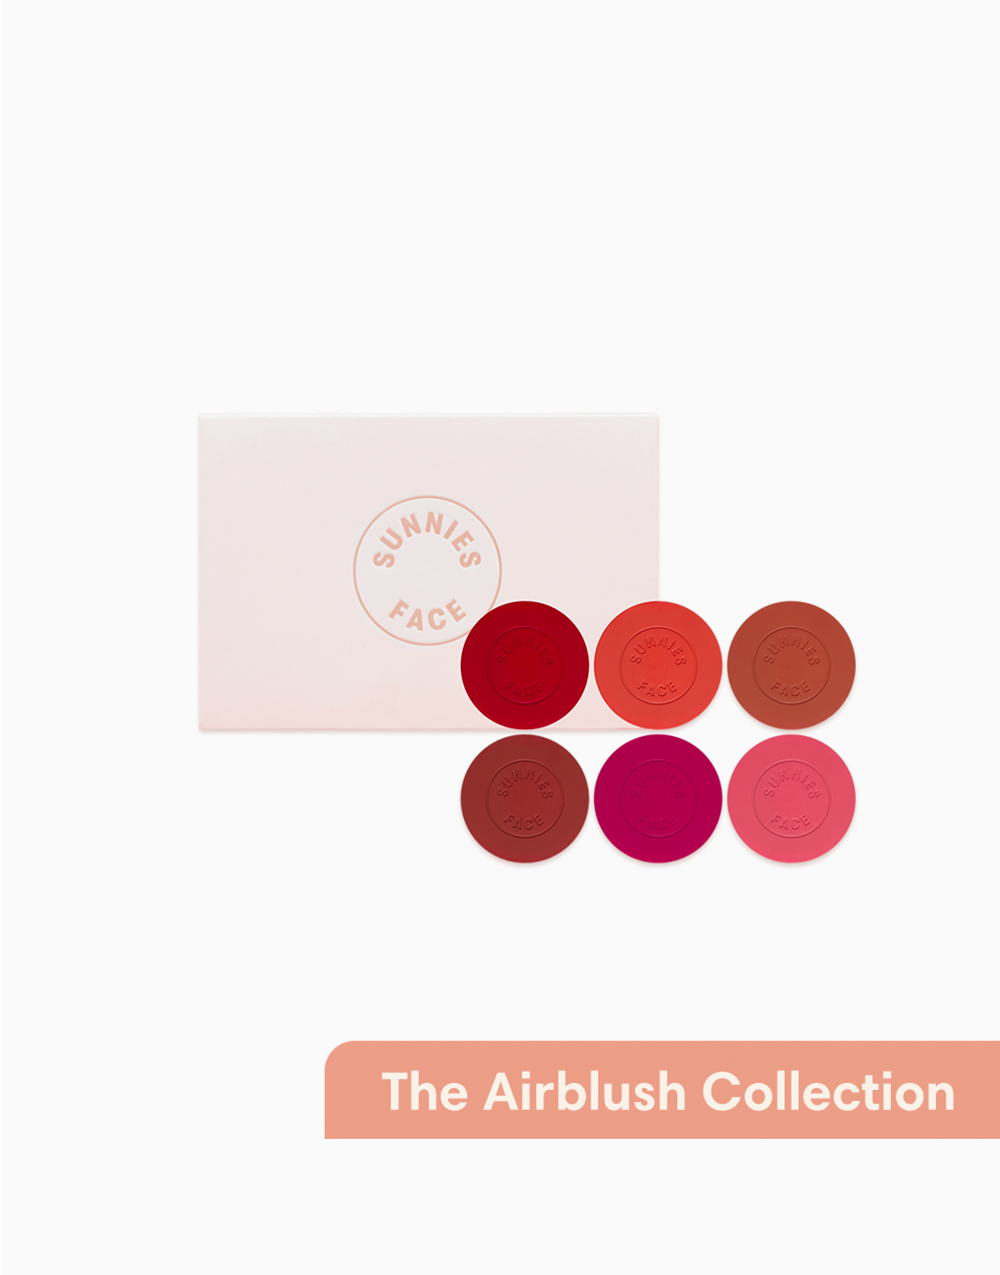 Sunnies Face The Airblush Collection [Cream Blush & Cheek Tint Set] by Sunnies Face